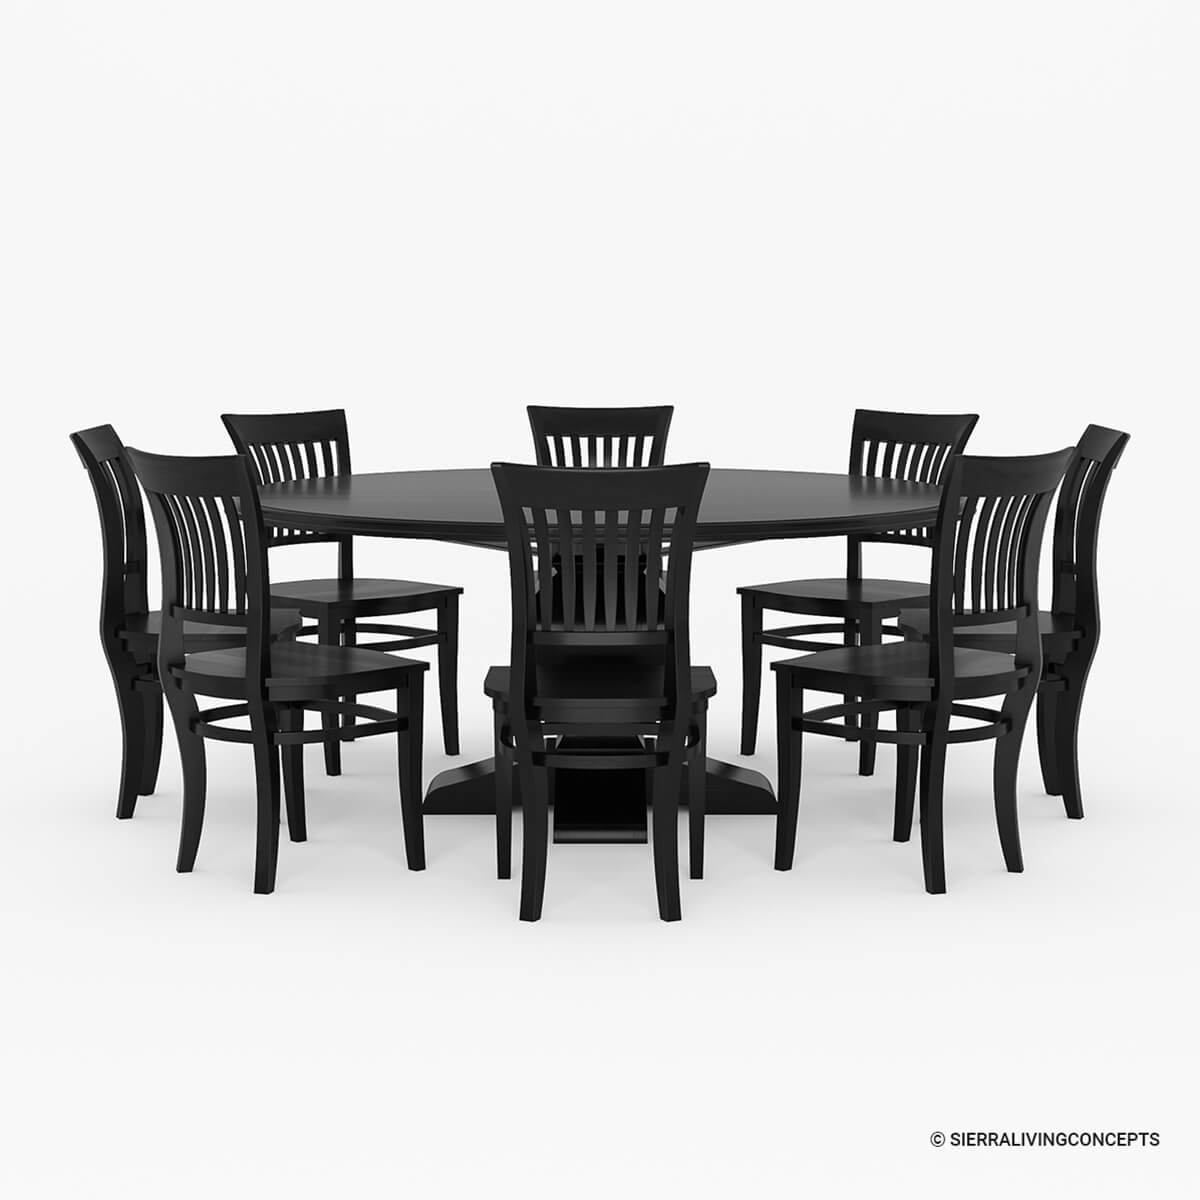 Sierra nevada large round rustic solid wood dining table for Wood dining table set